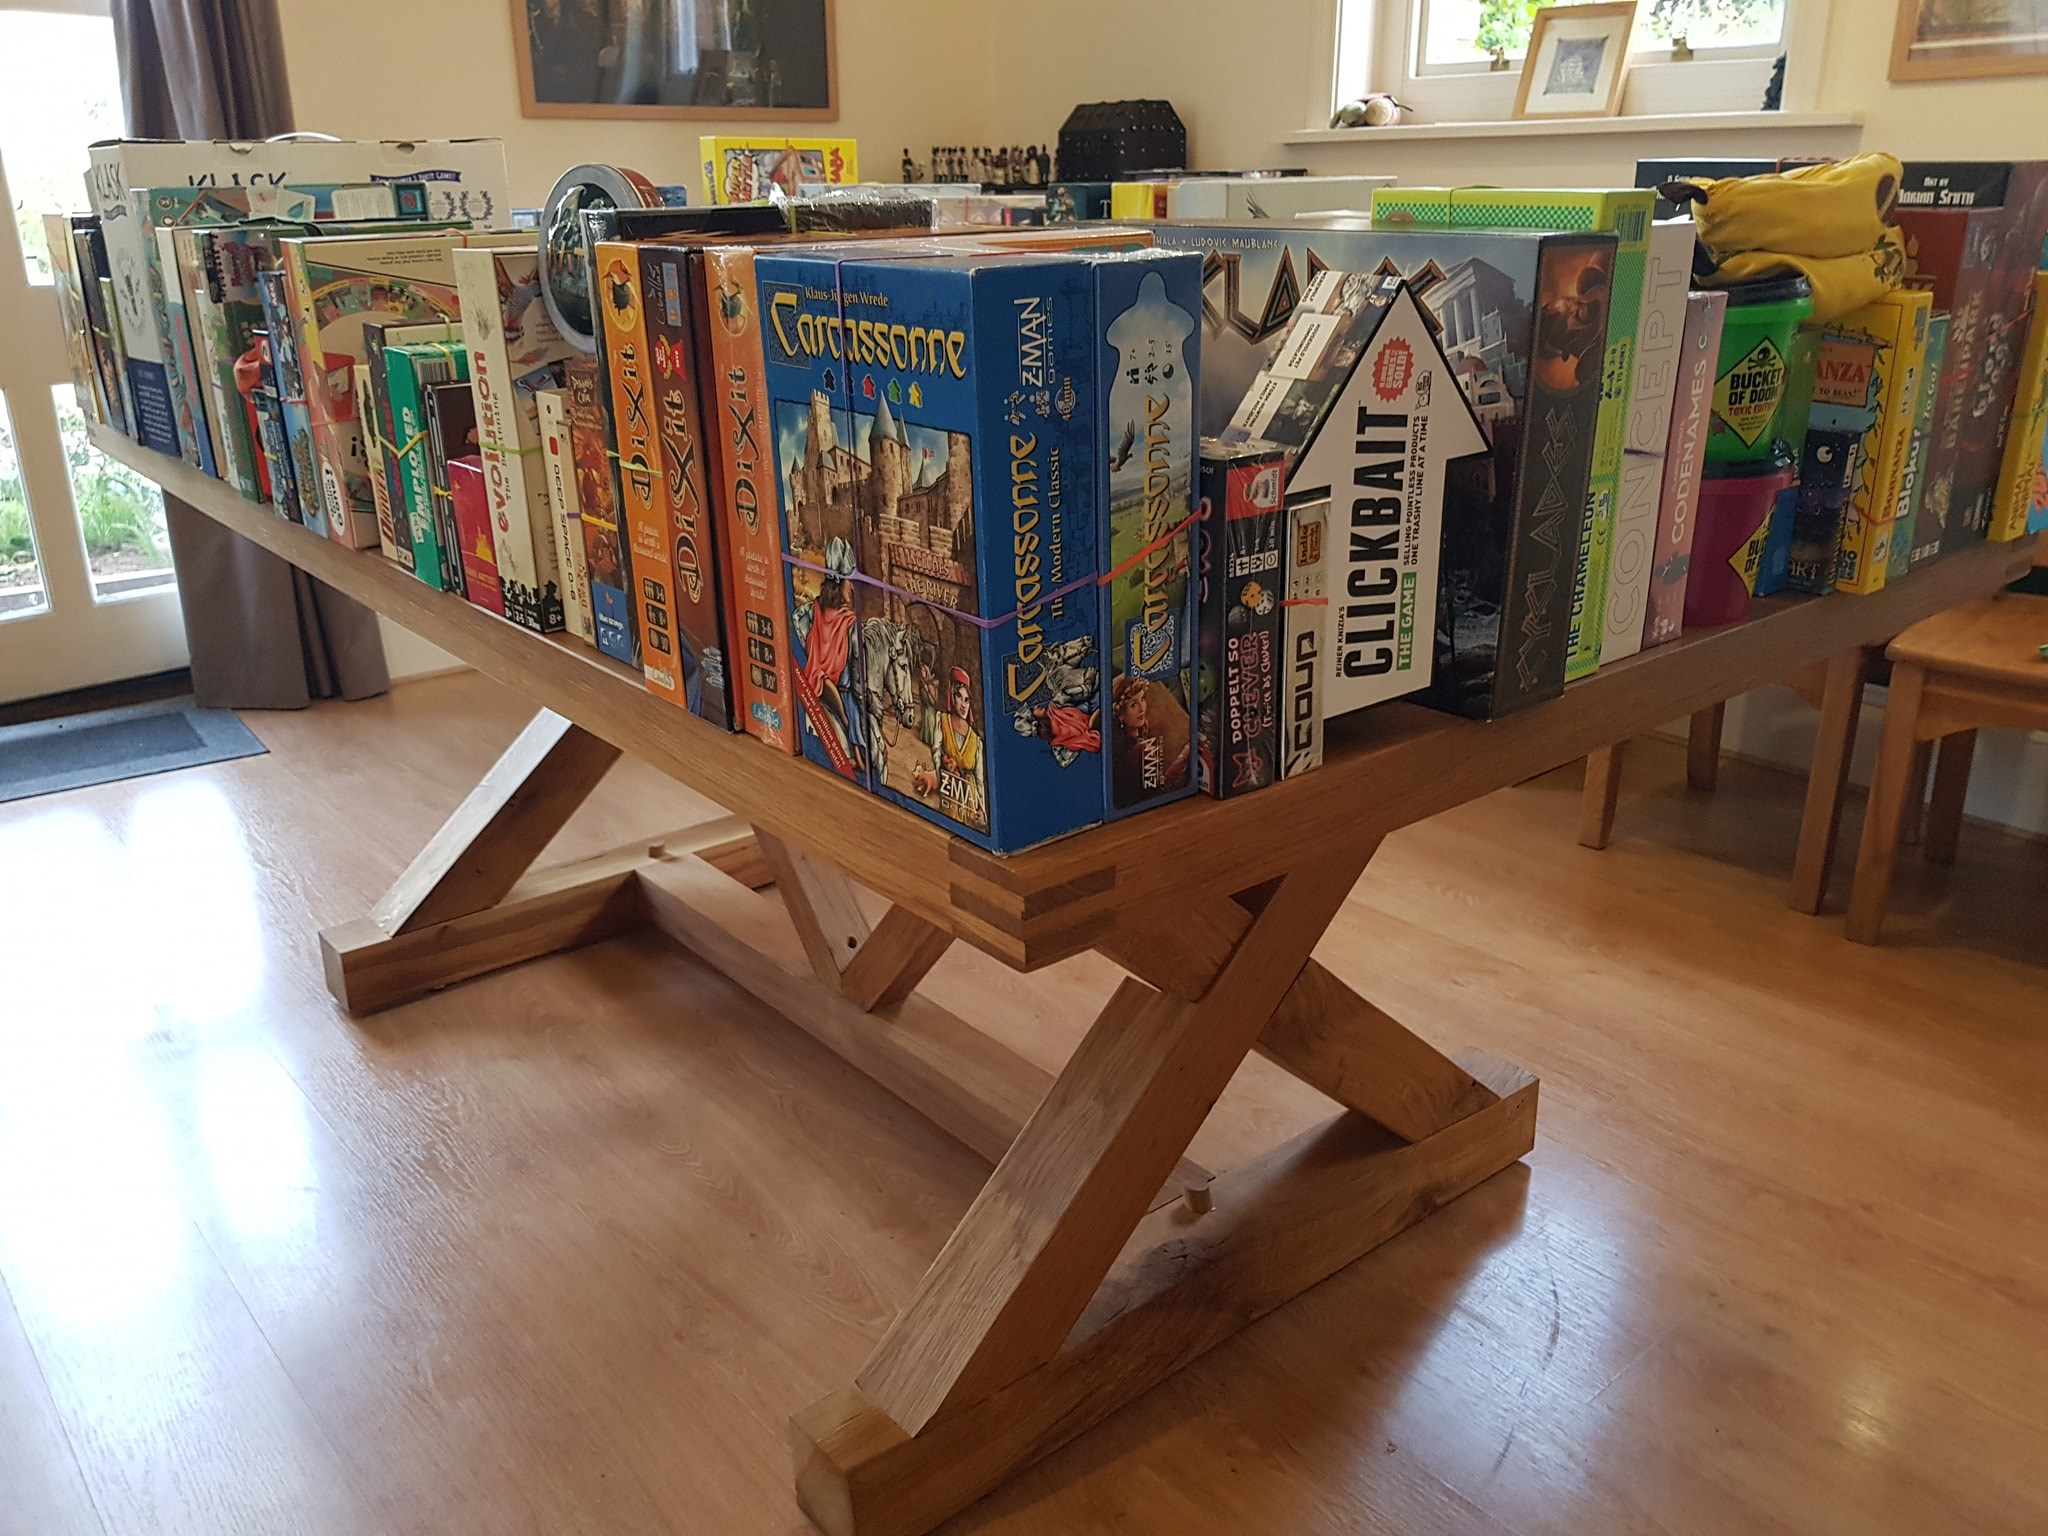 Welcome to our board game library!